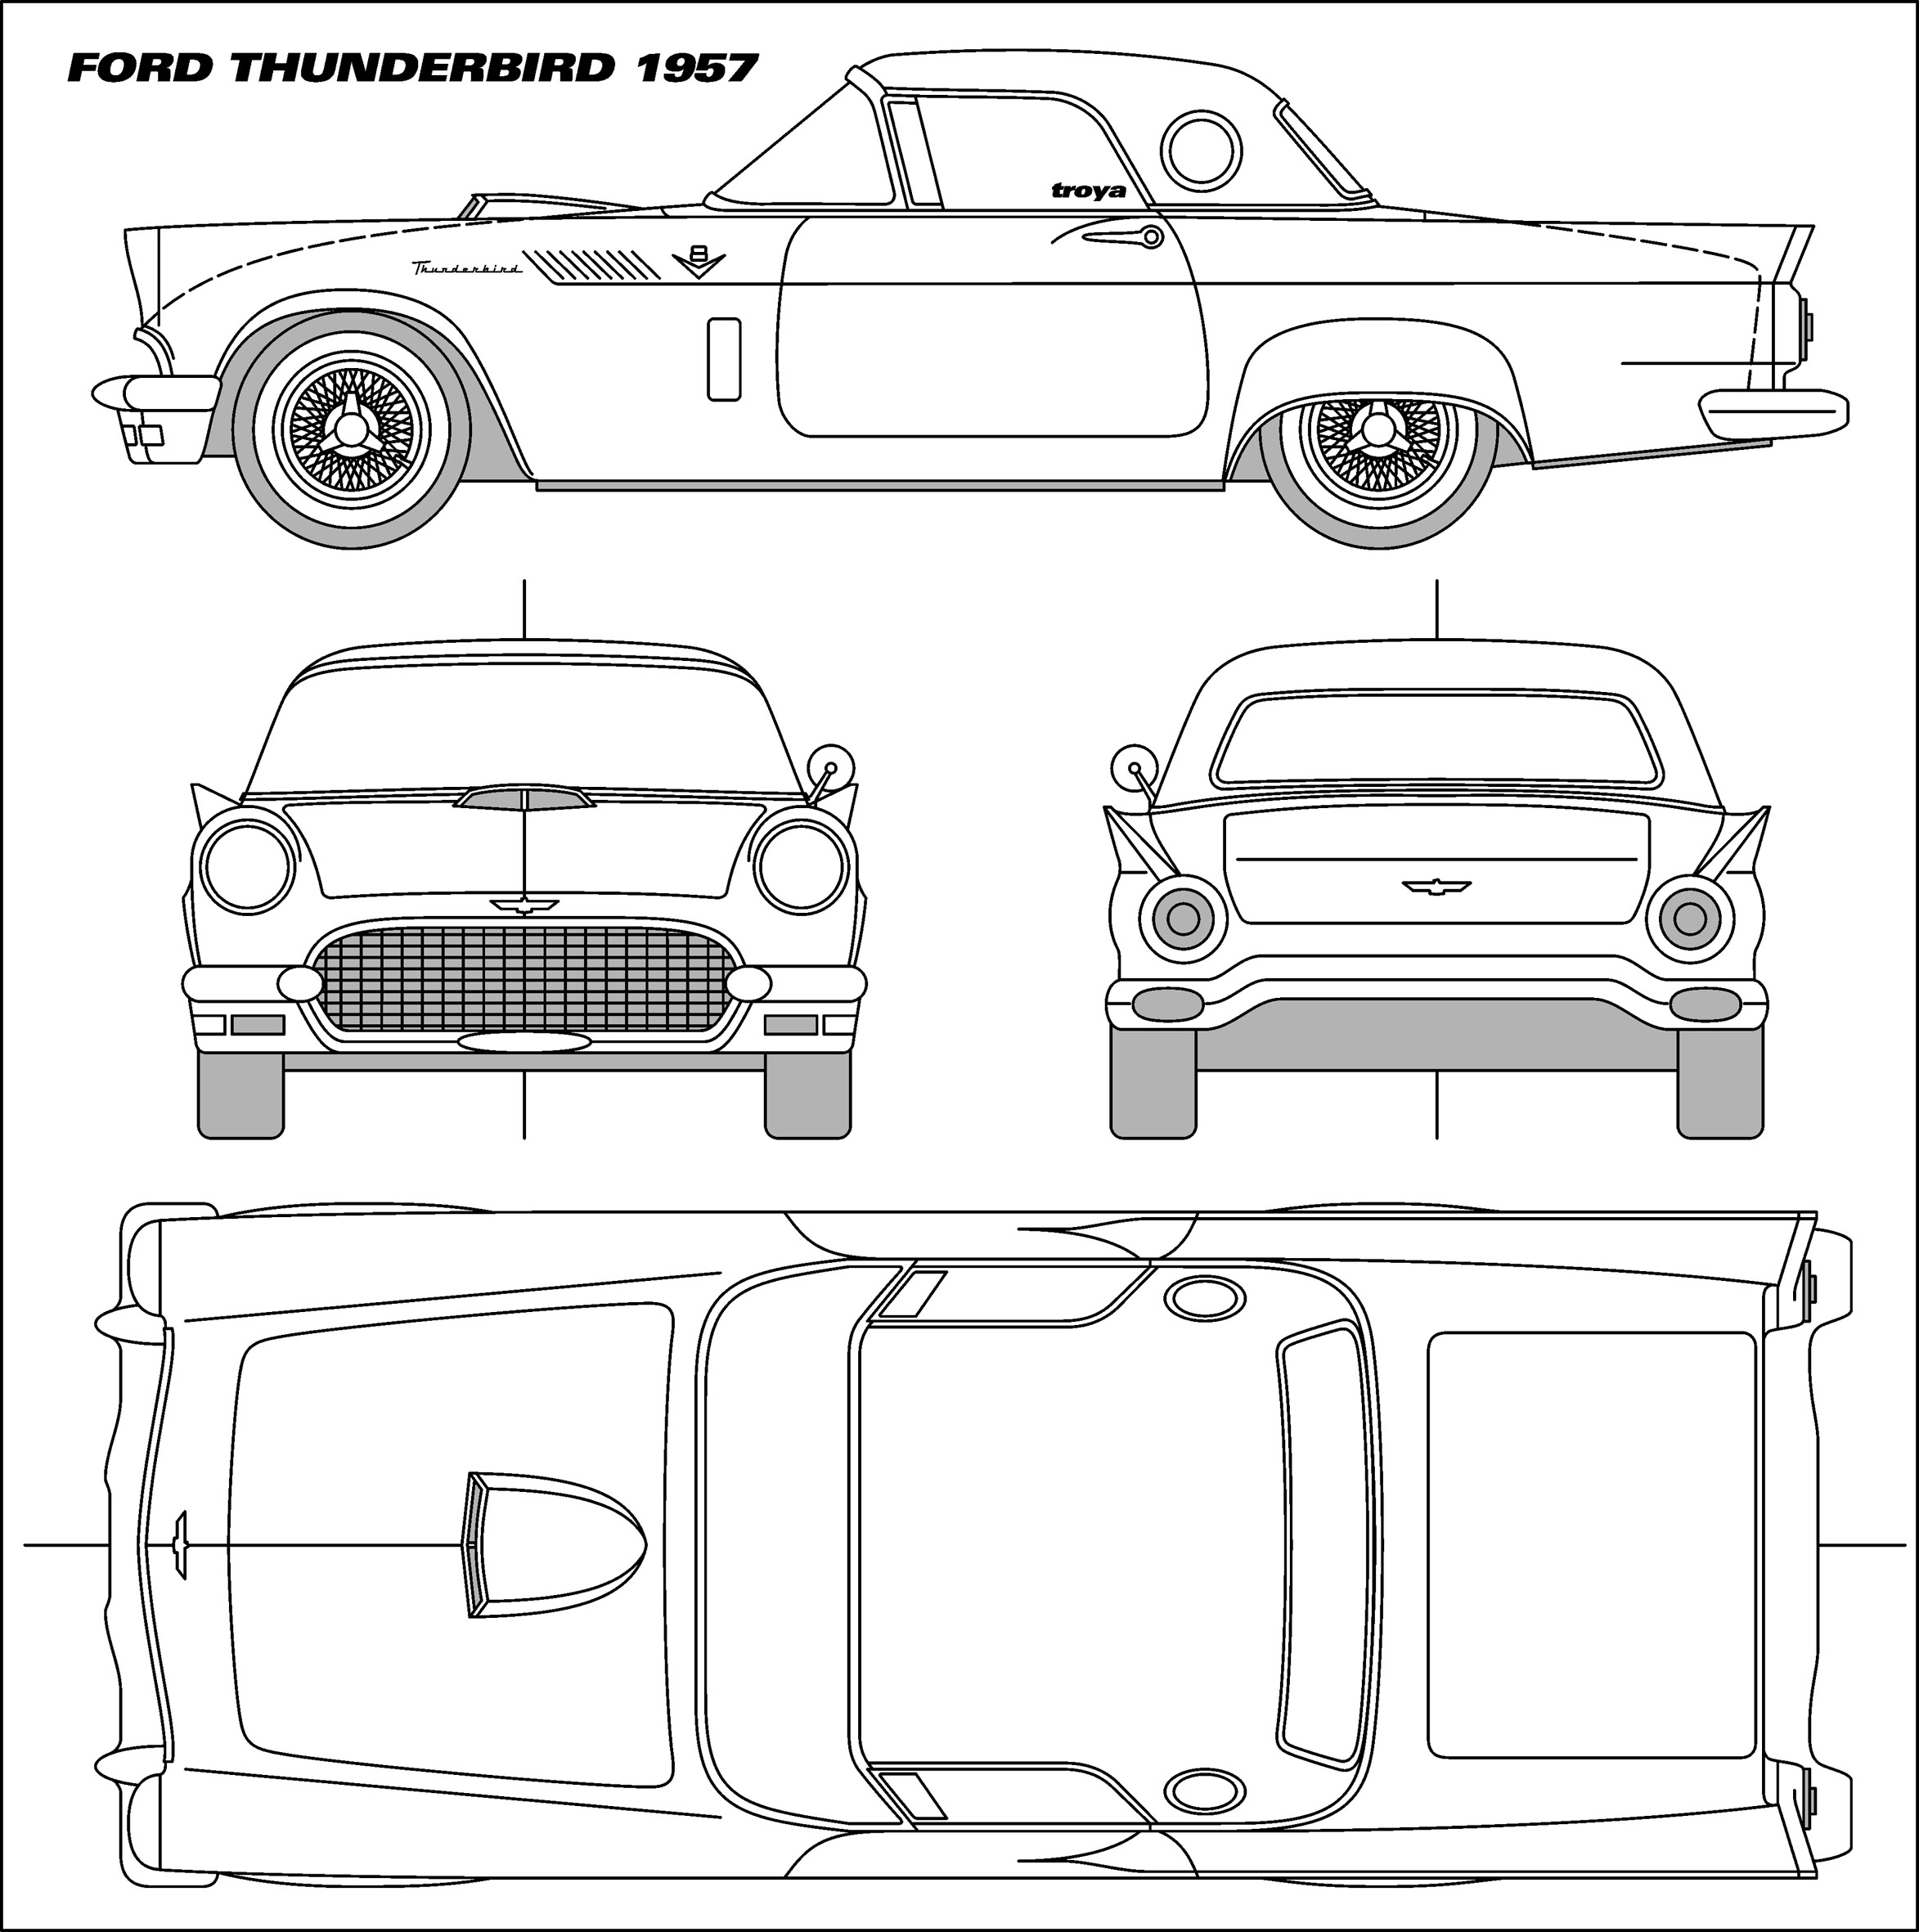 1956 t-bird clipart image library Ford Thunderbird 1957 Blueprint - Download free blueprint for 3D ... image library